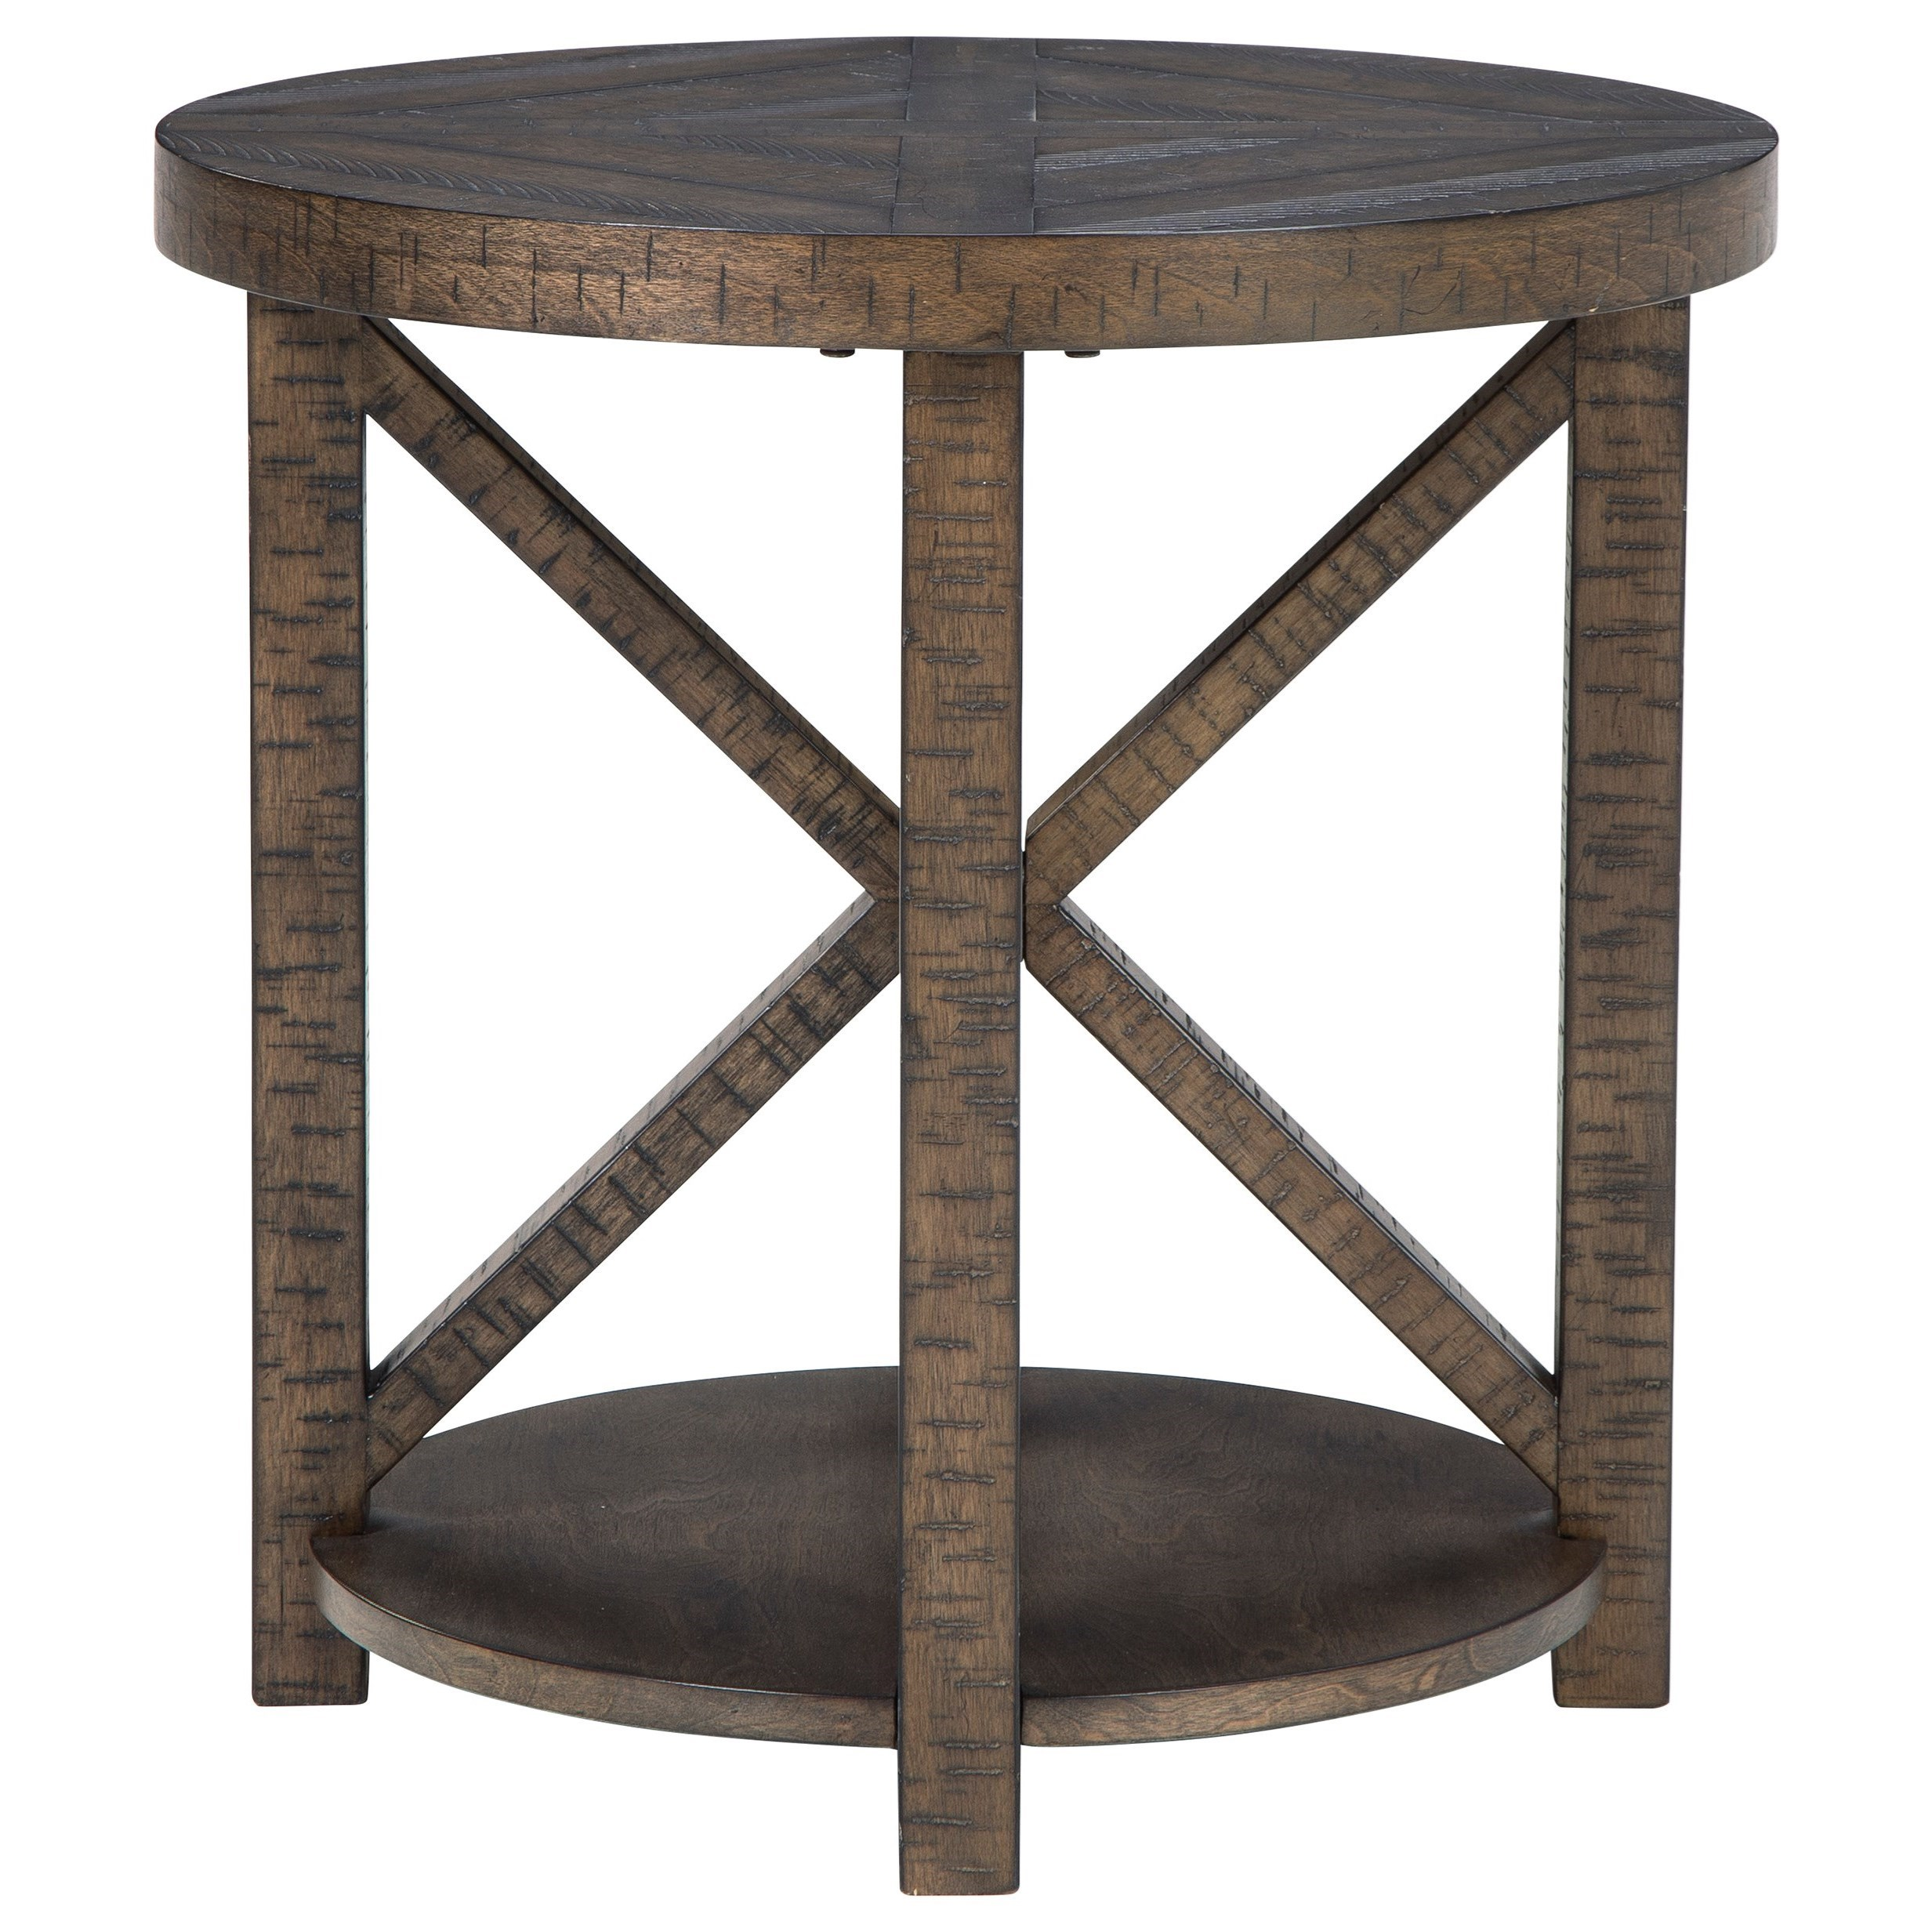 Jessoli Round End Table by Signature Design by Ashley at Rife's Home Furniture